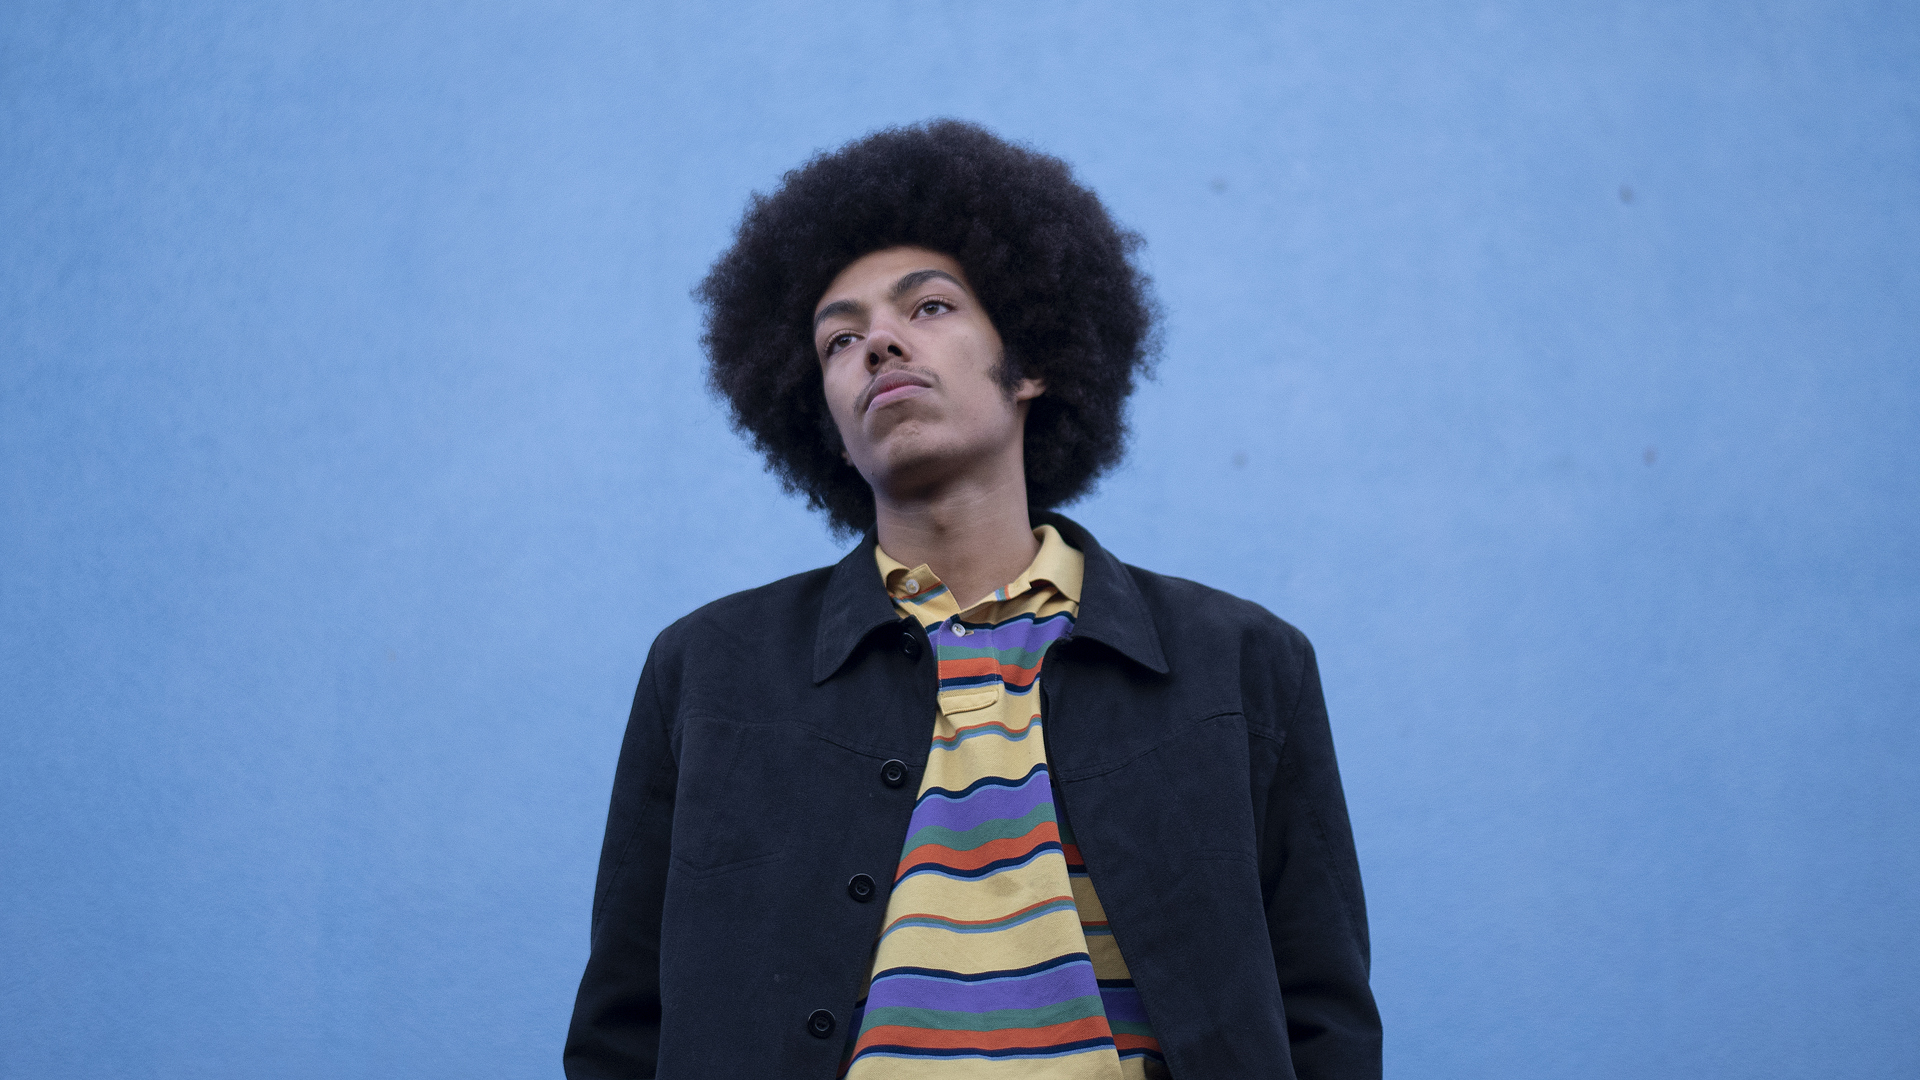 Frizz Laurent - Our interview with Coventry based singer/songwriter, Frizz Laurent.